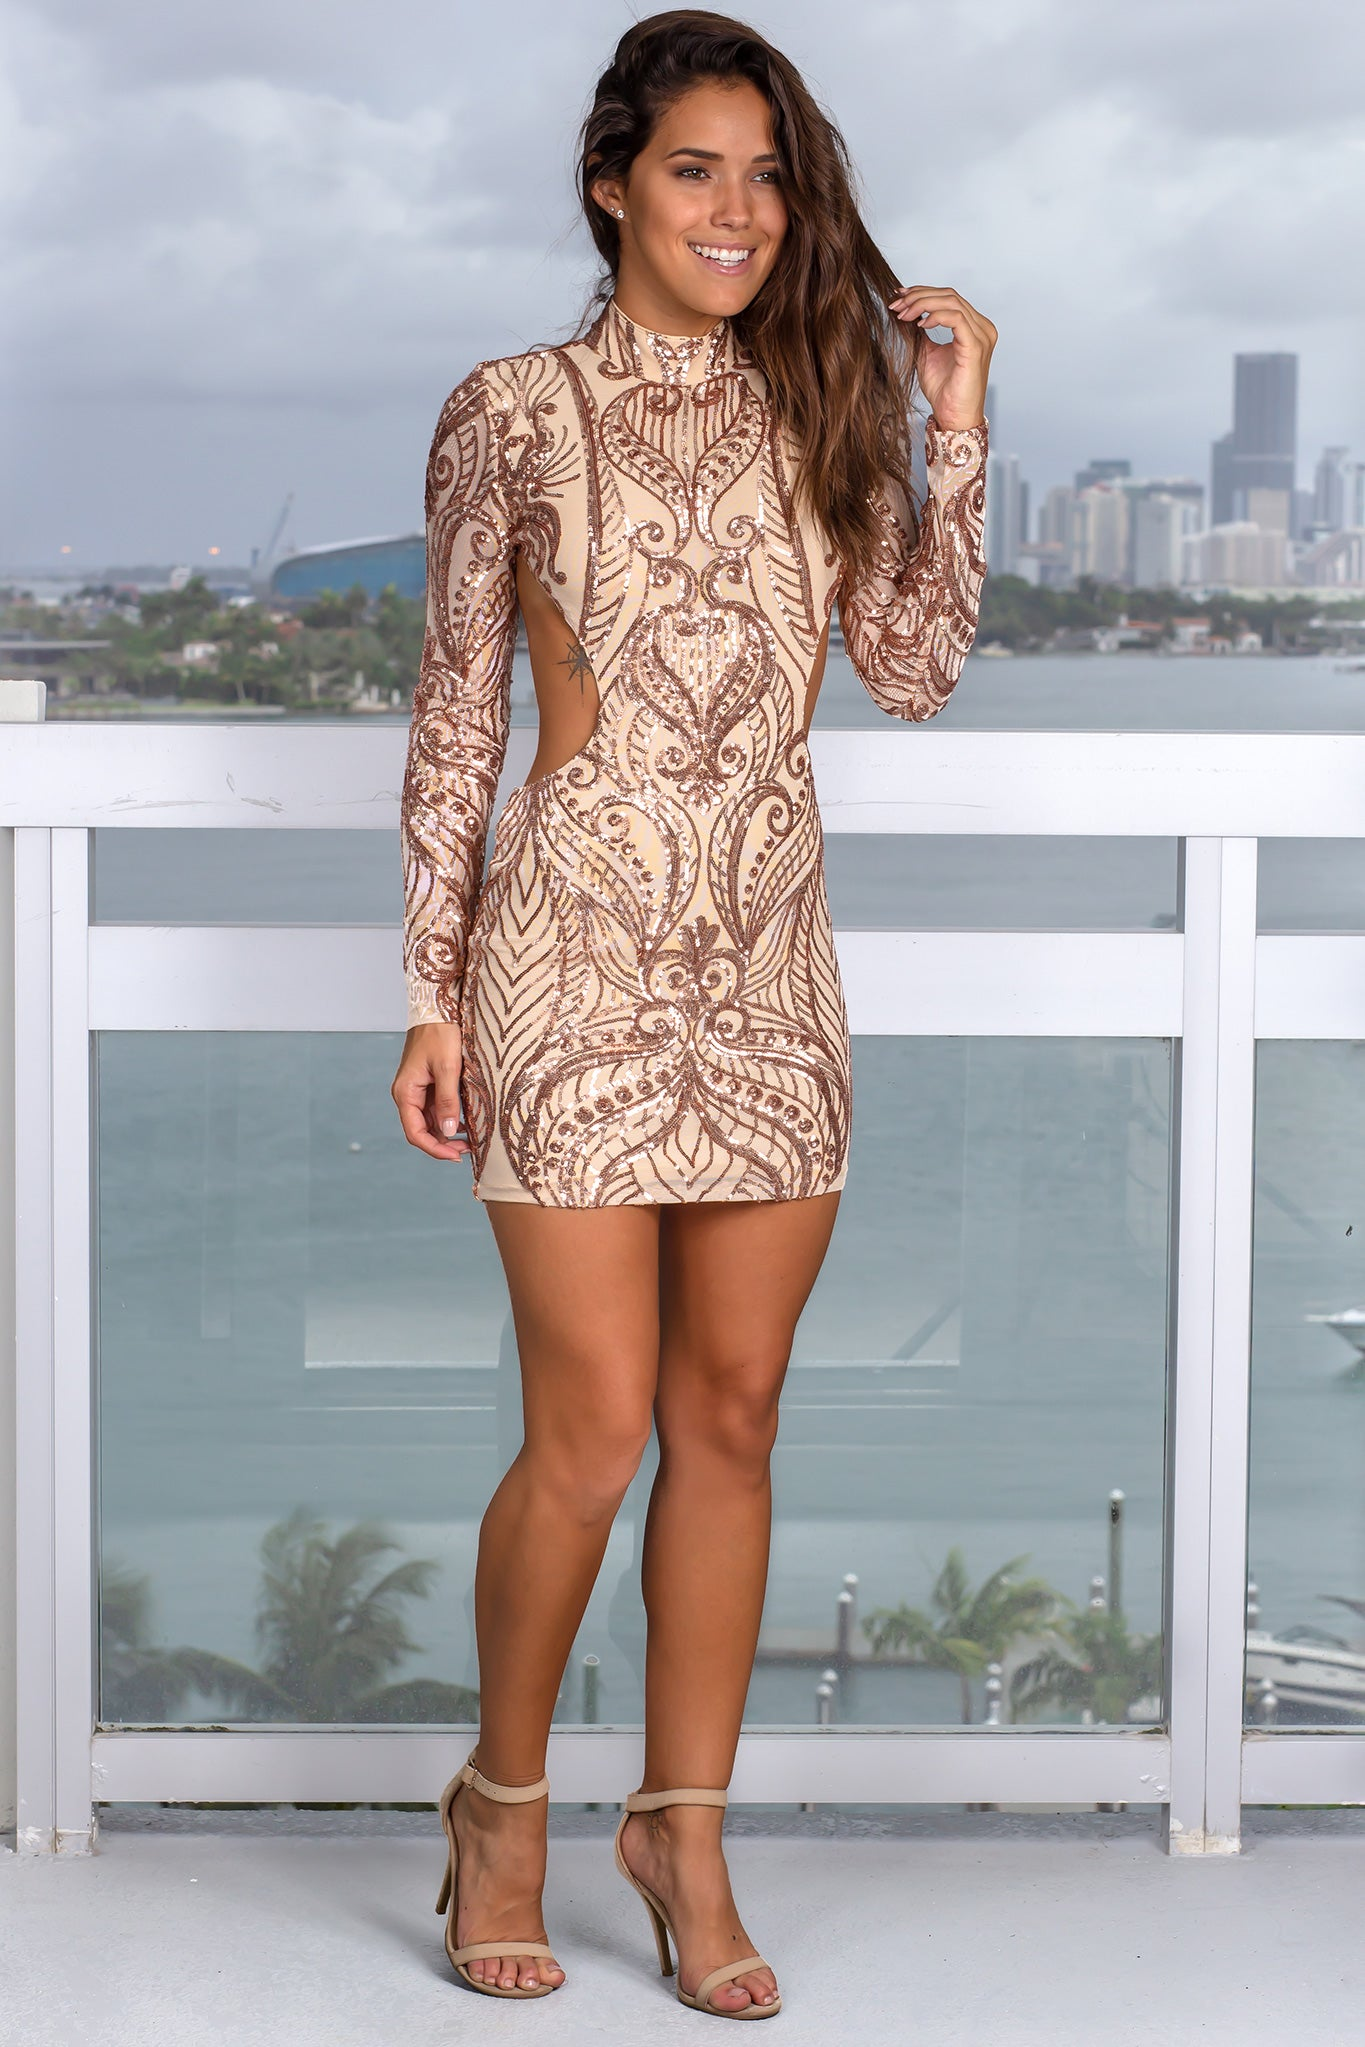 Rose Gold High Neck Sequin Short Dress